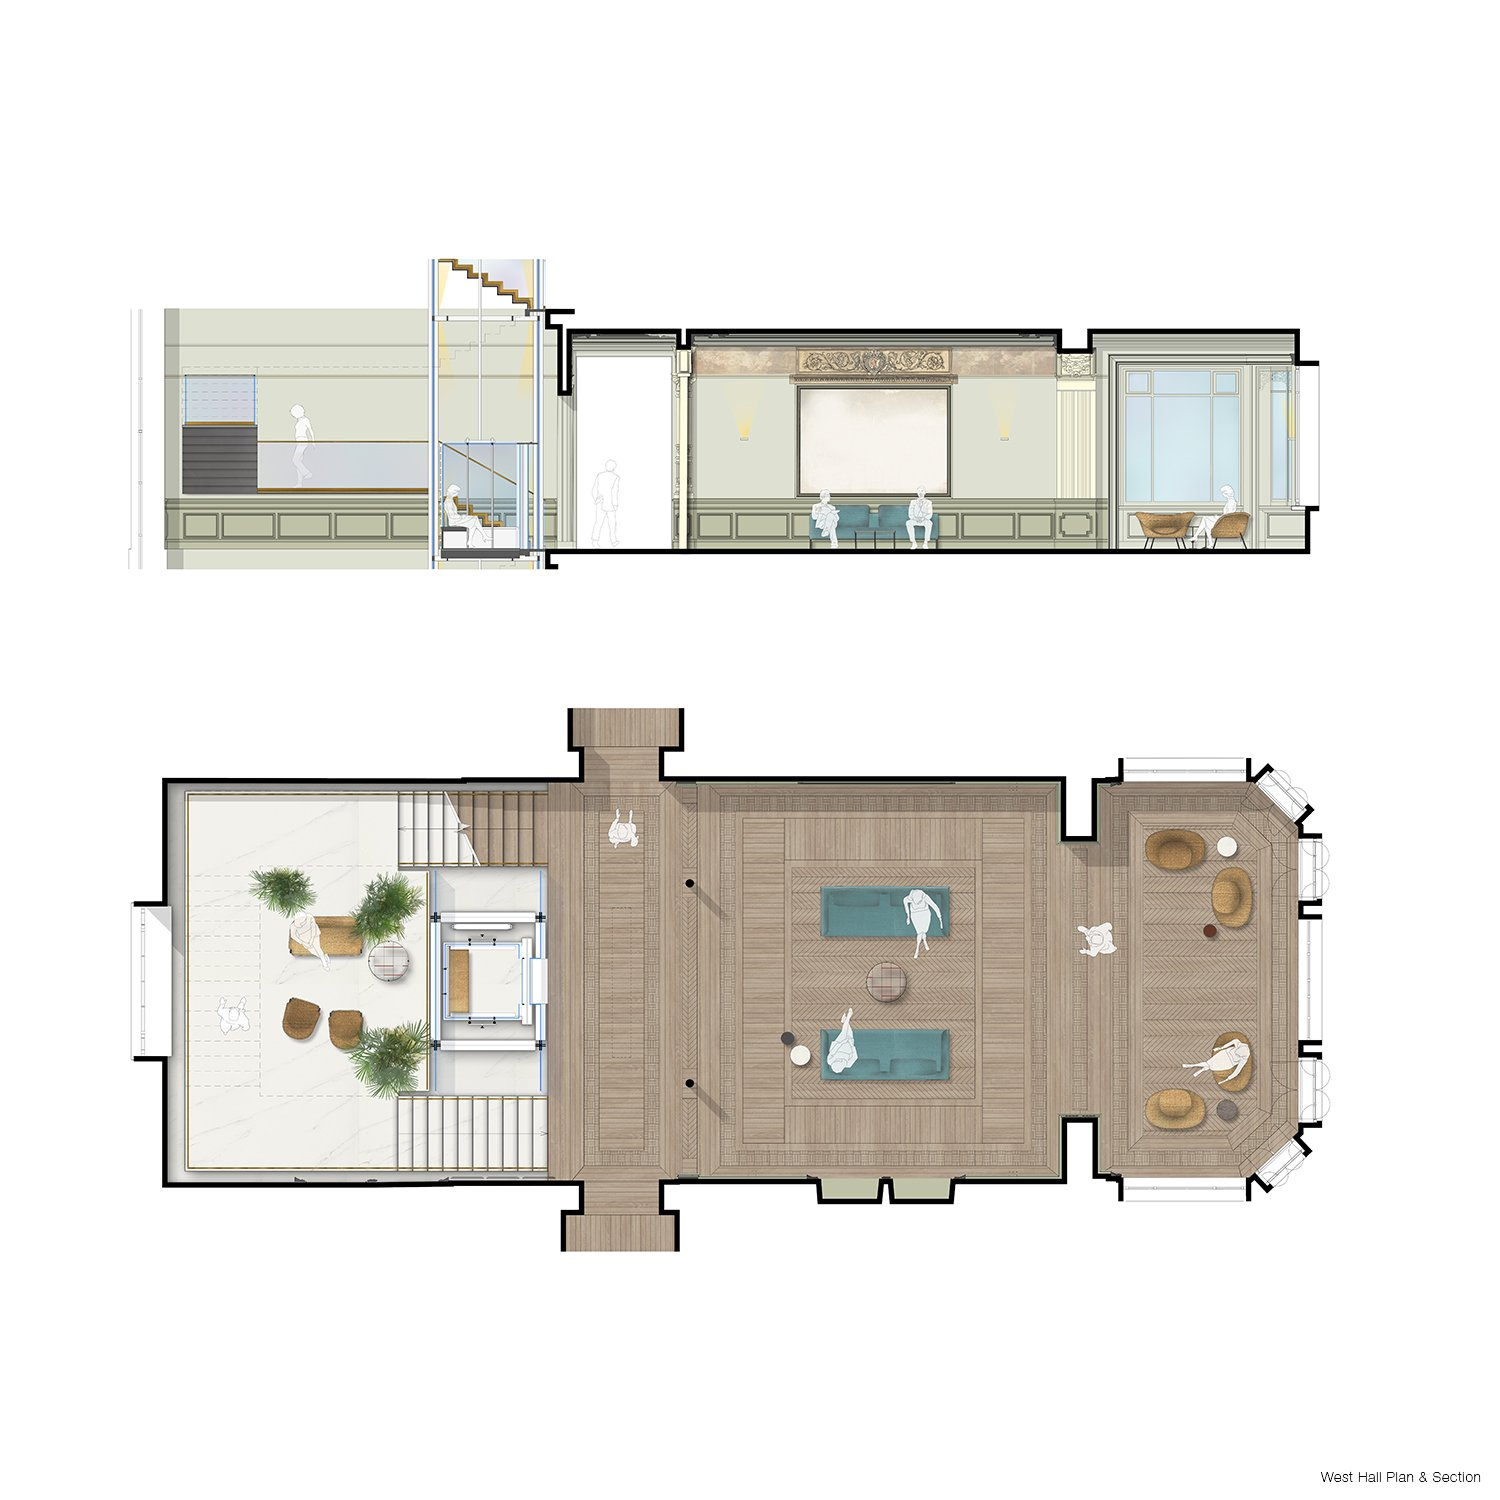 WEST HALL PLAN AND SECTION Tectoo srl}